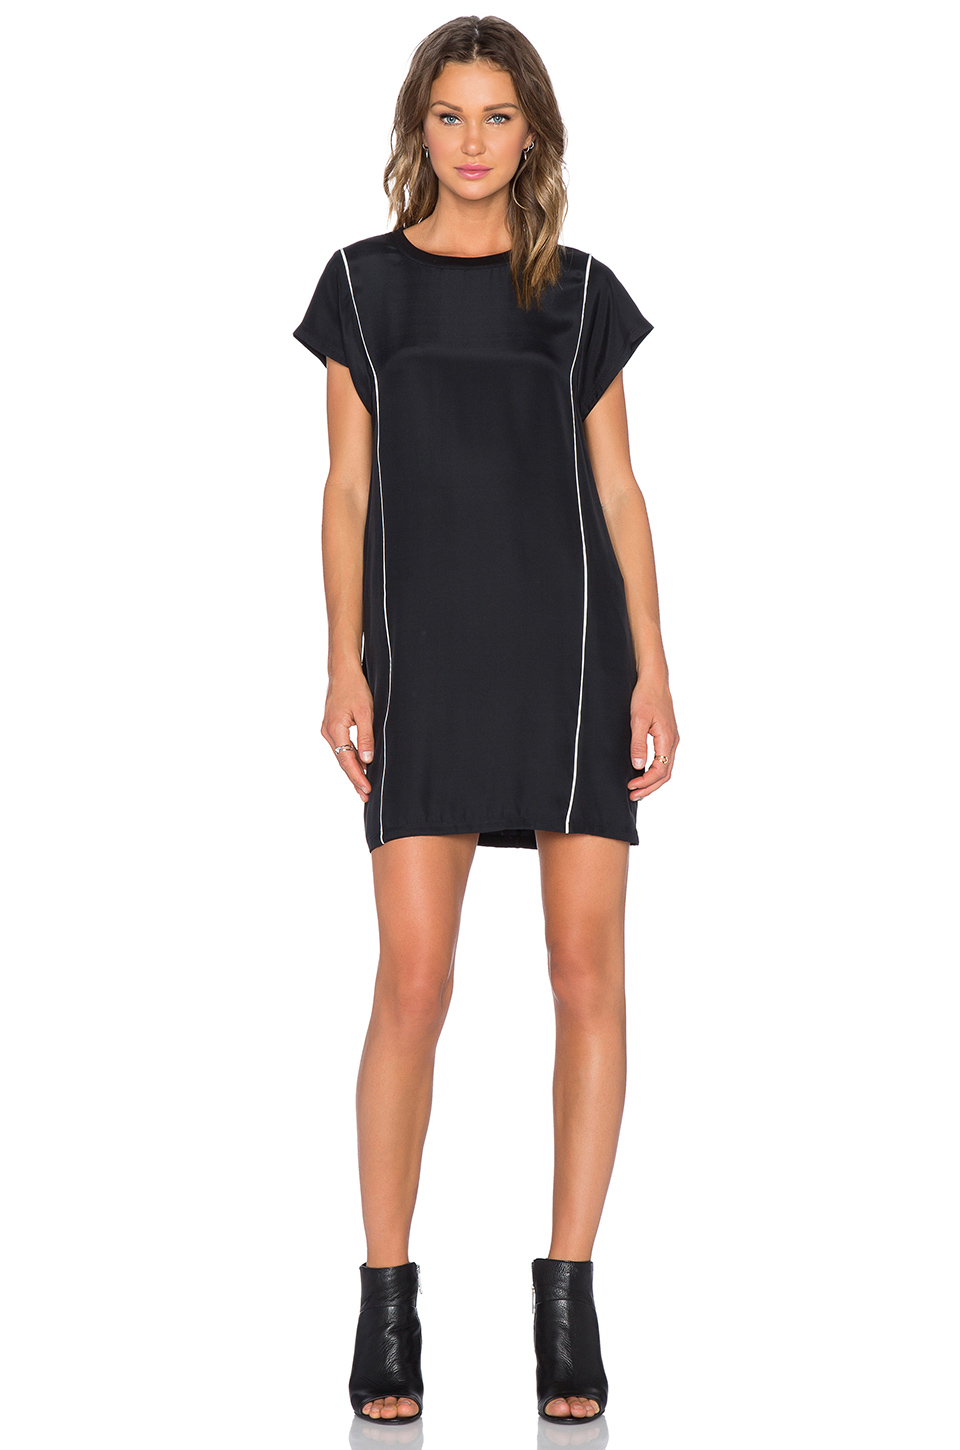 Atm piped silk t shirt dress in black lyst for Atm t shirt sale